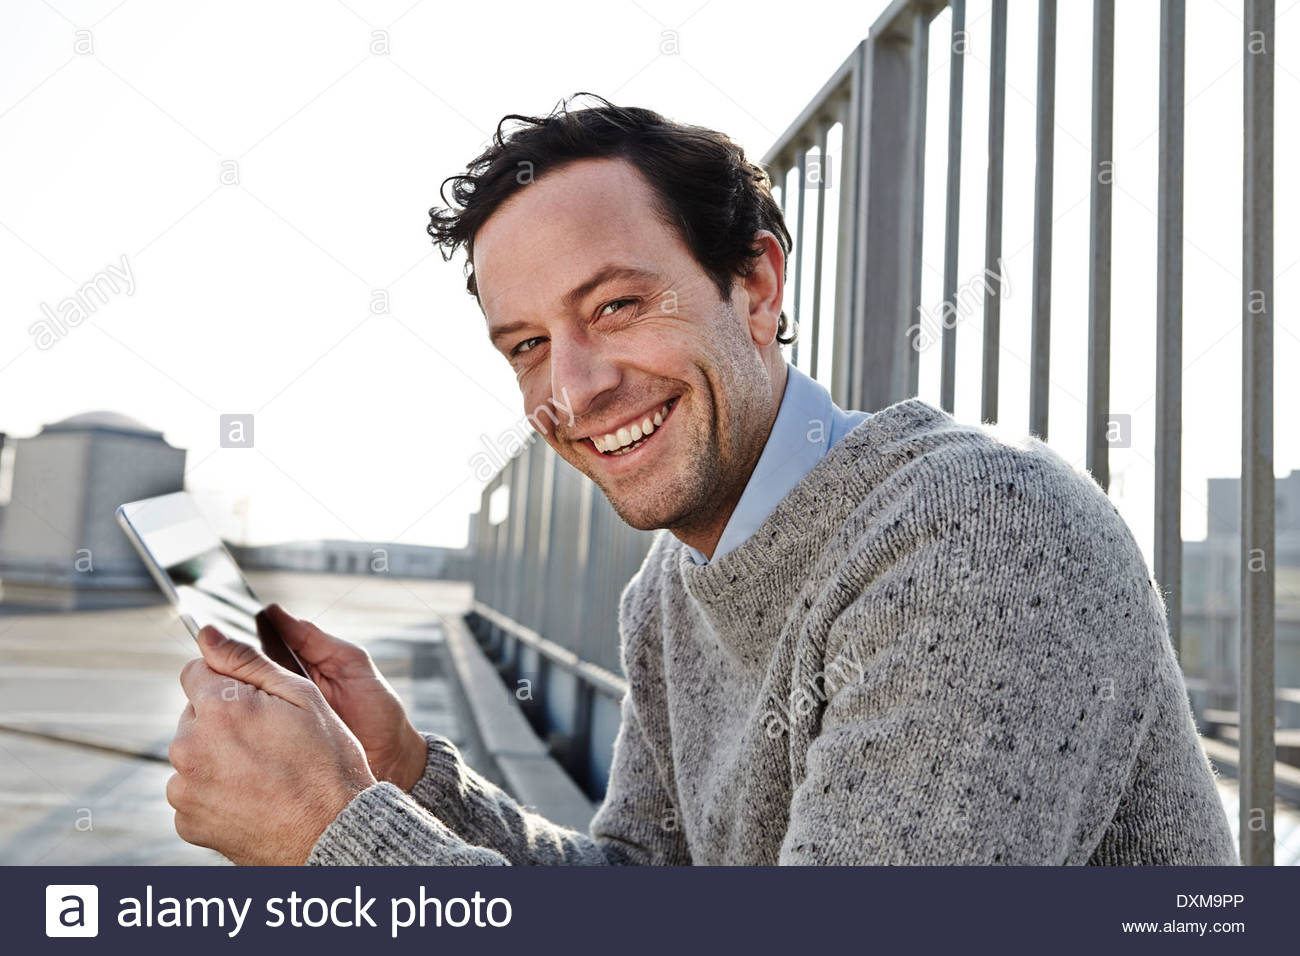 Portrait of smiling man holding tablet computer - Stock Image